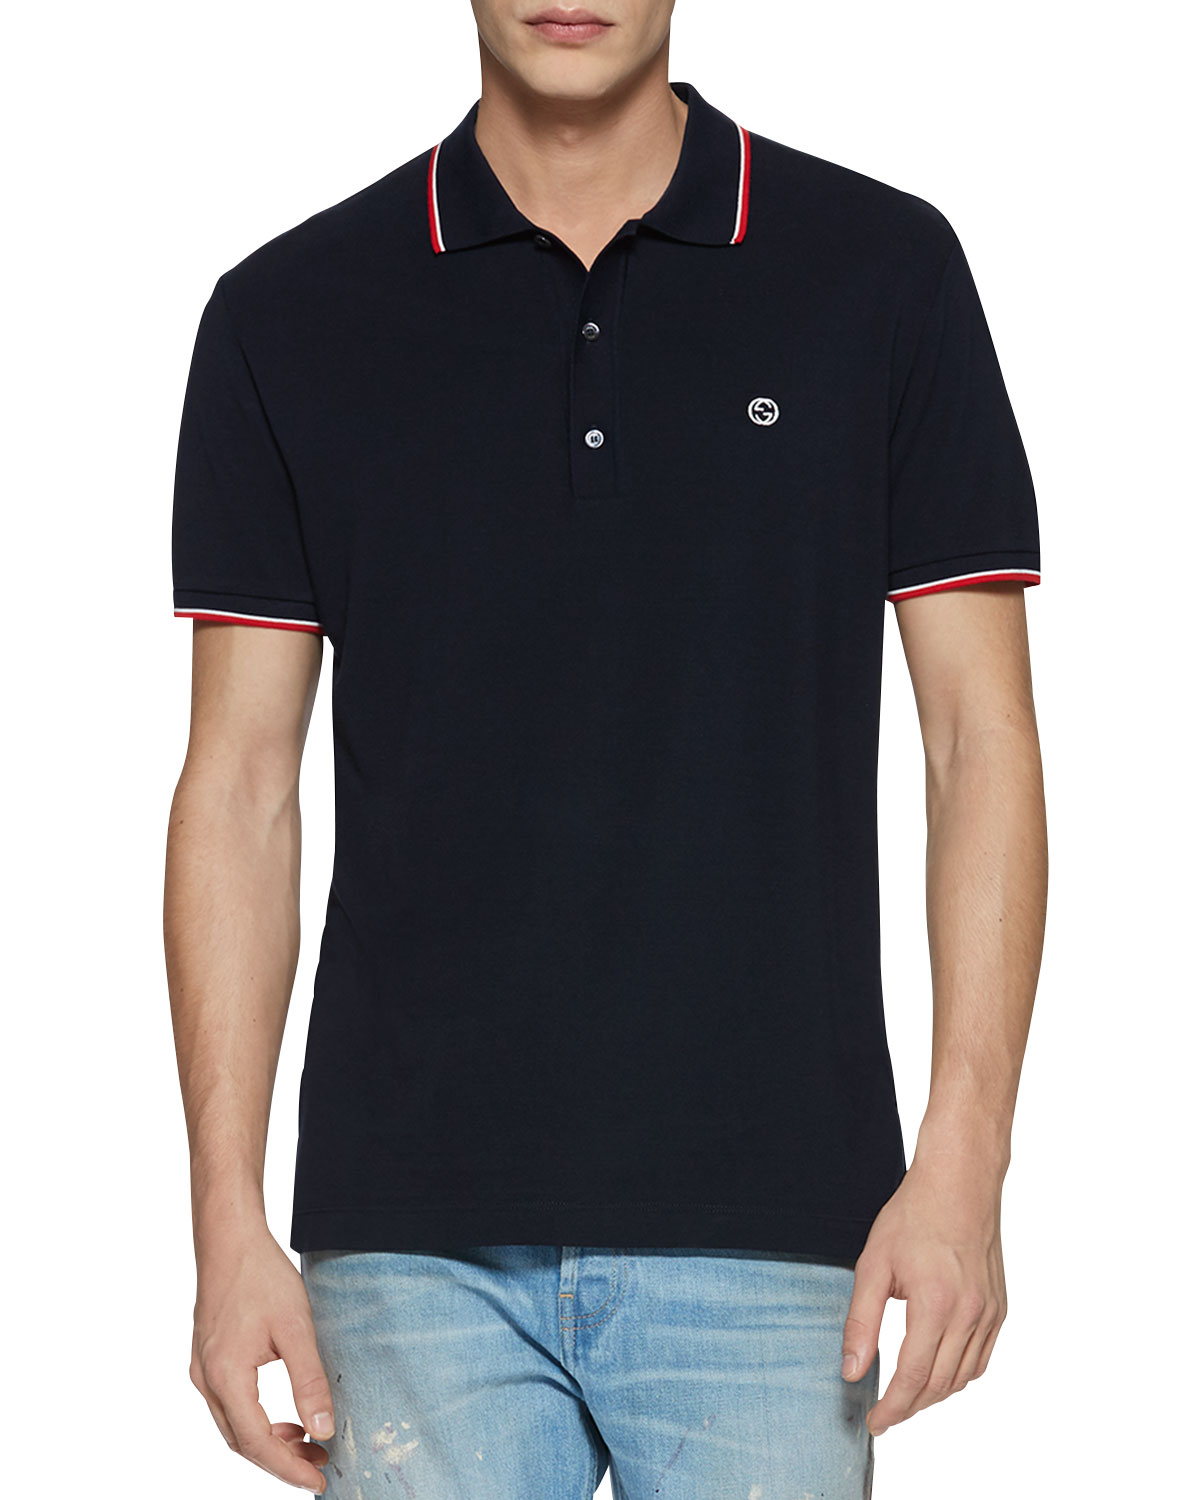 33b2da8a575e Gucci Cotton Piquet Polo Shirt with Web Detail